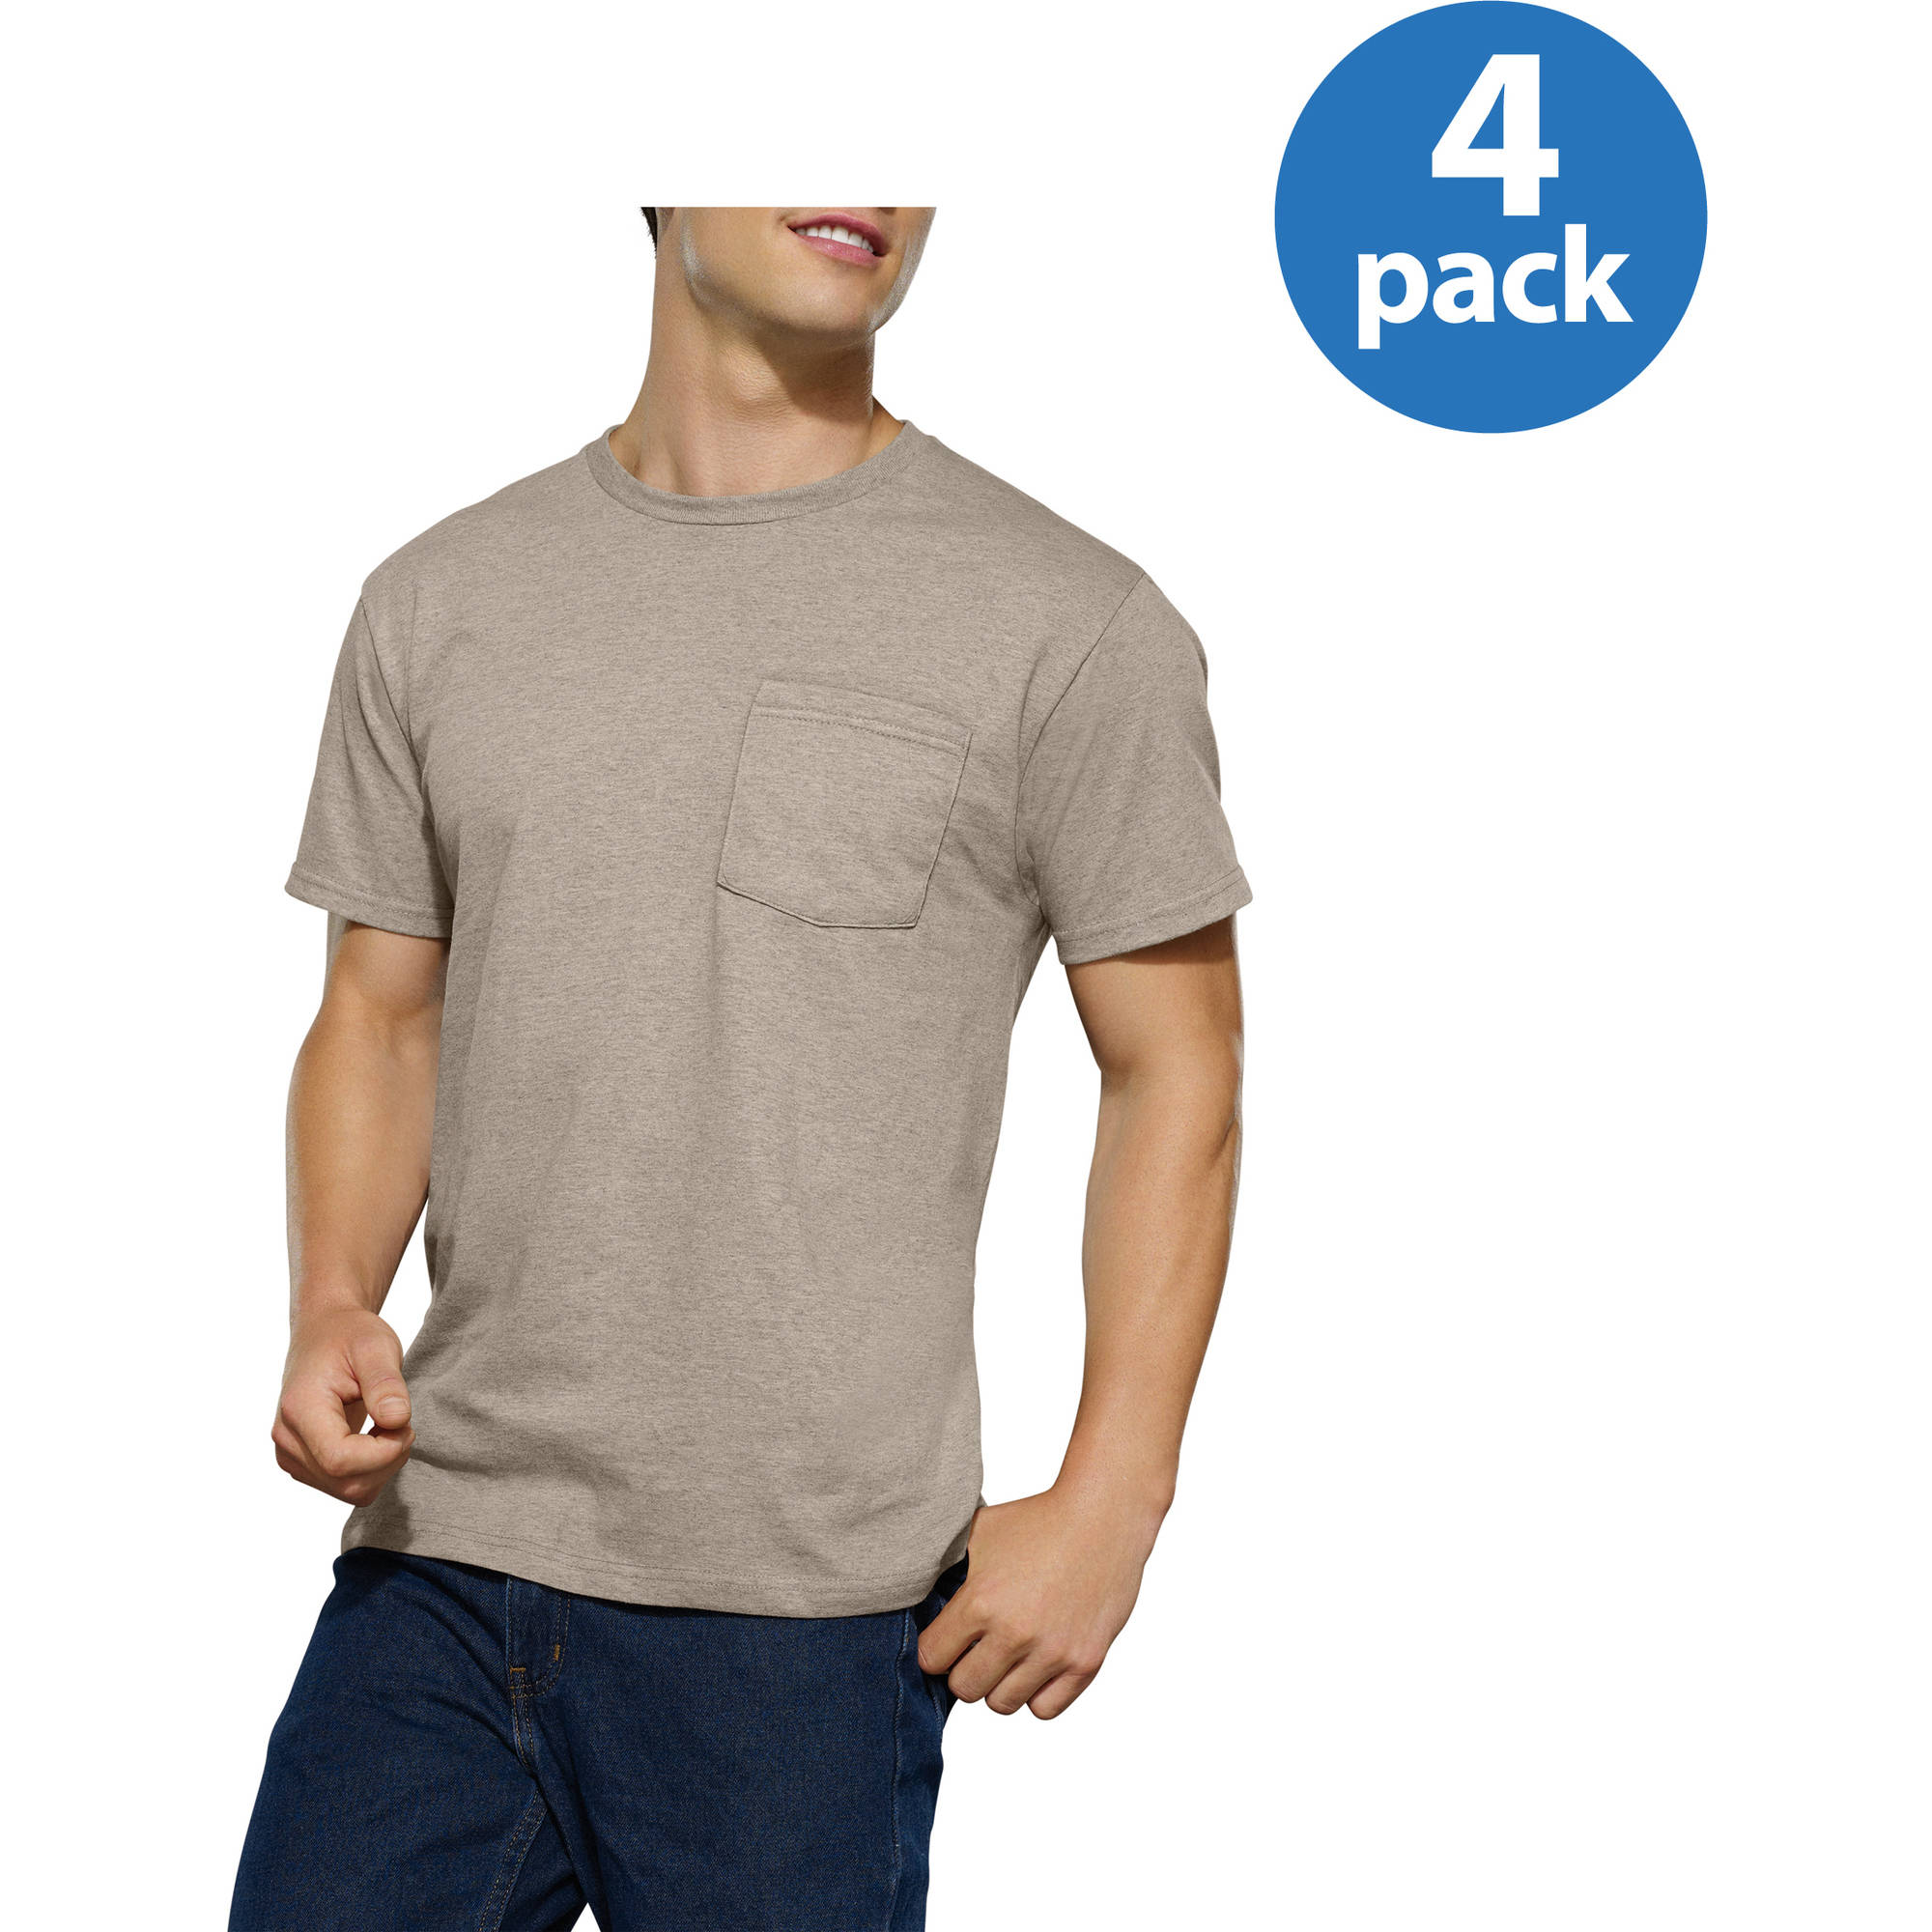 Fruit of the Loom Men's Assorted Color Pocket T-Shirt, 4-Pack